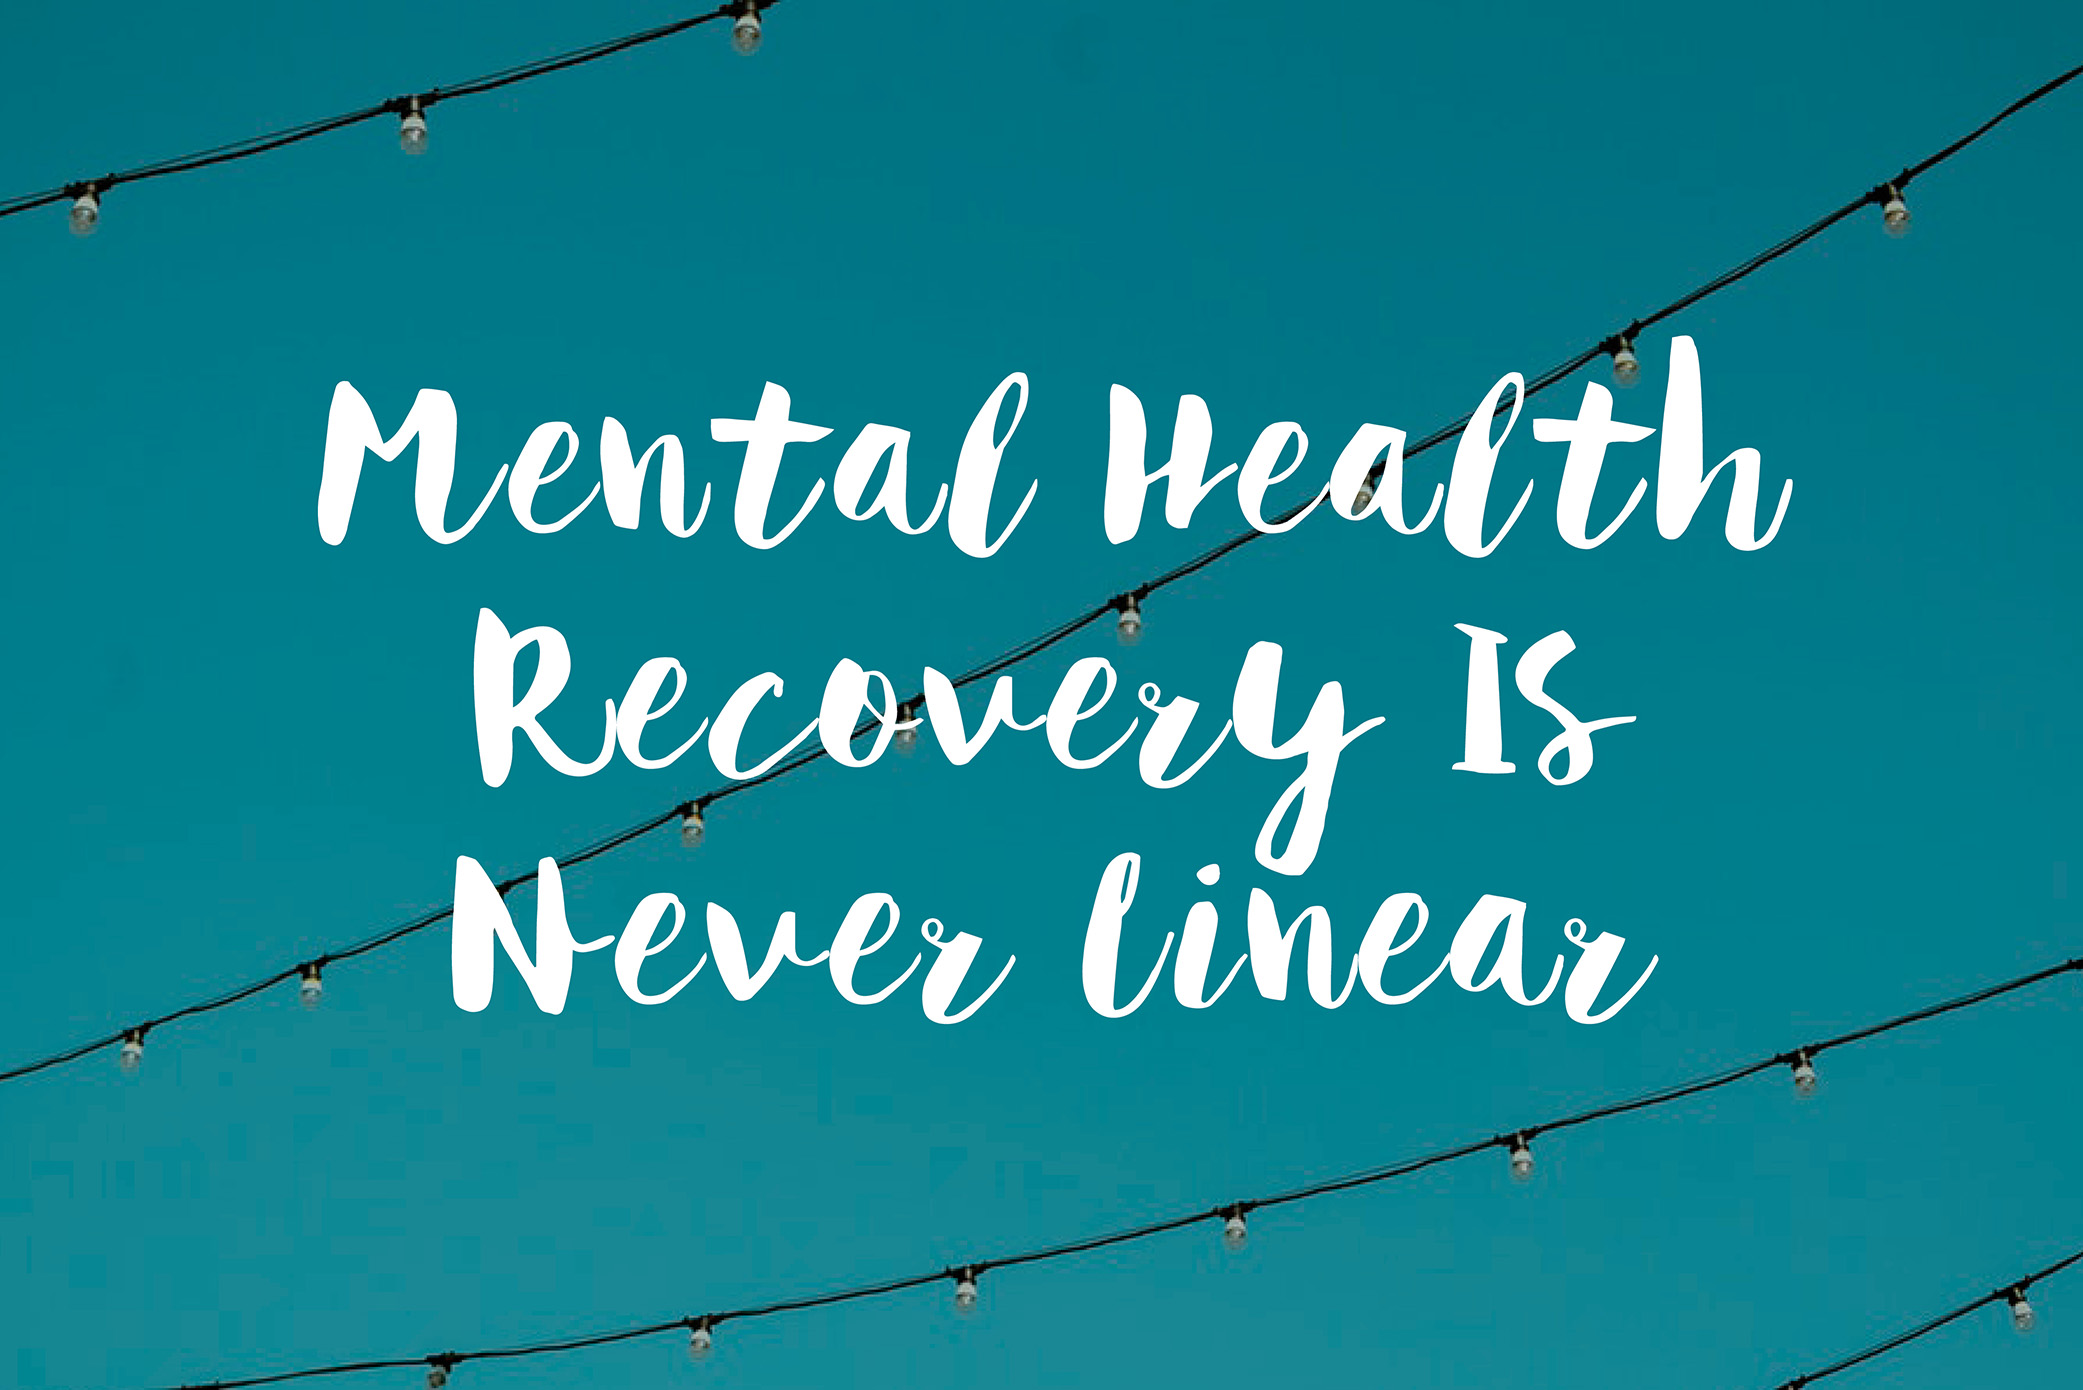 Mental Health Recovery Is Never Linear